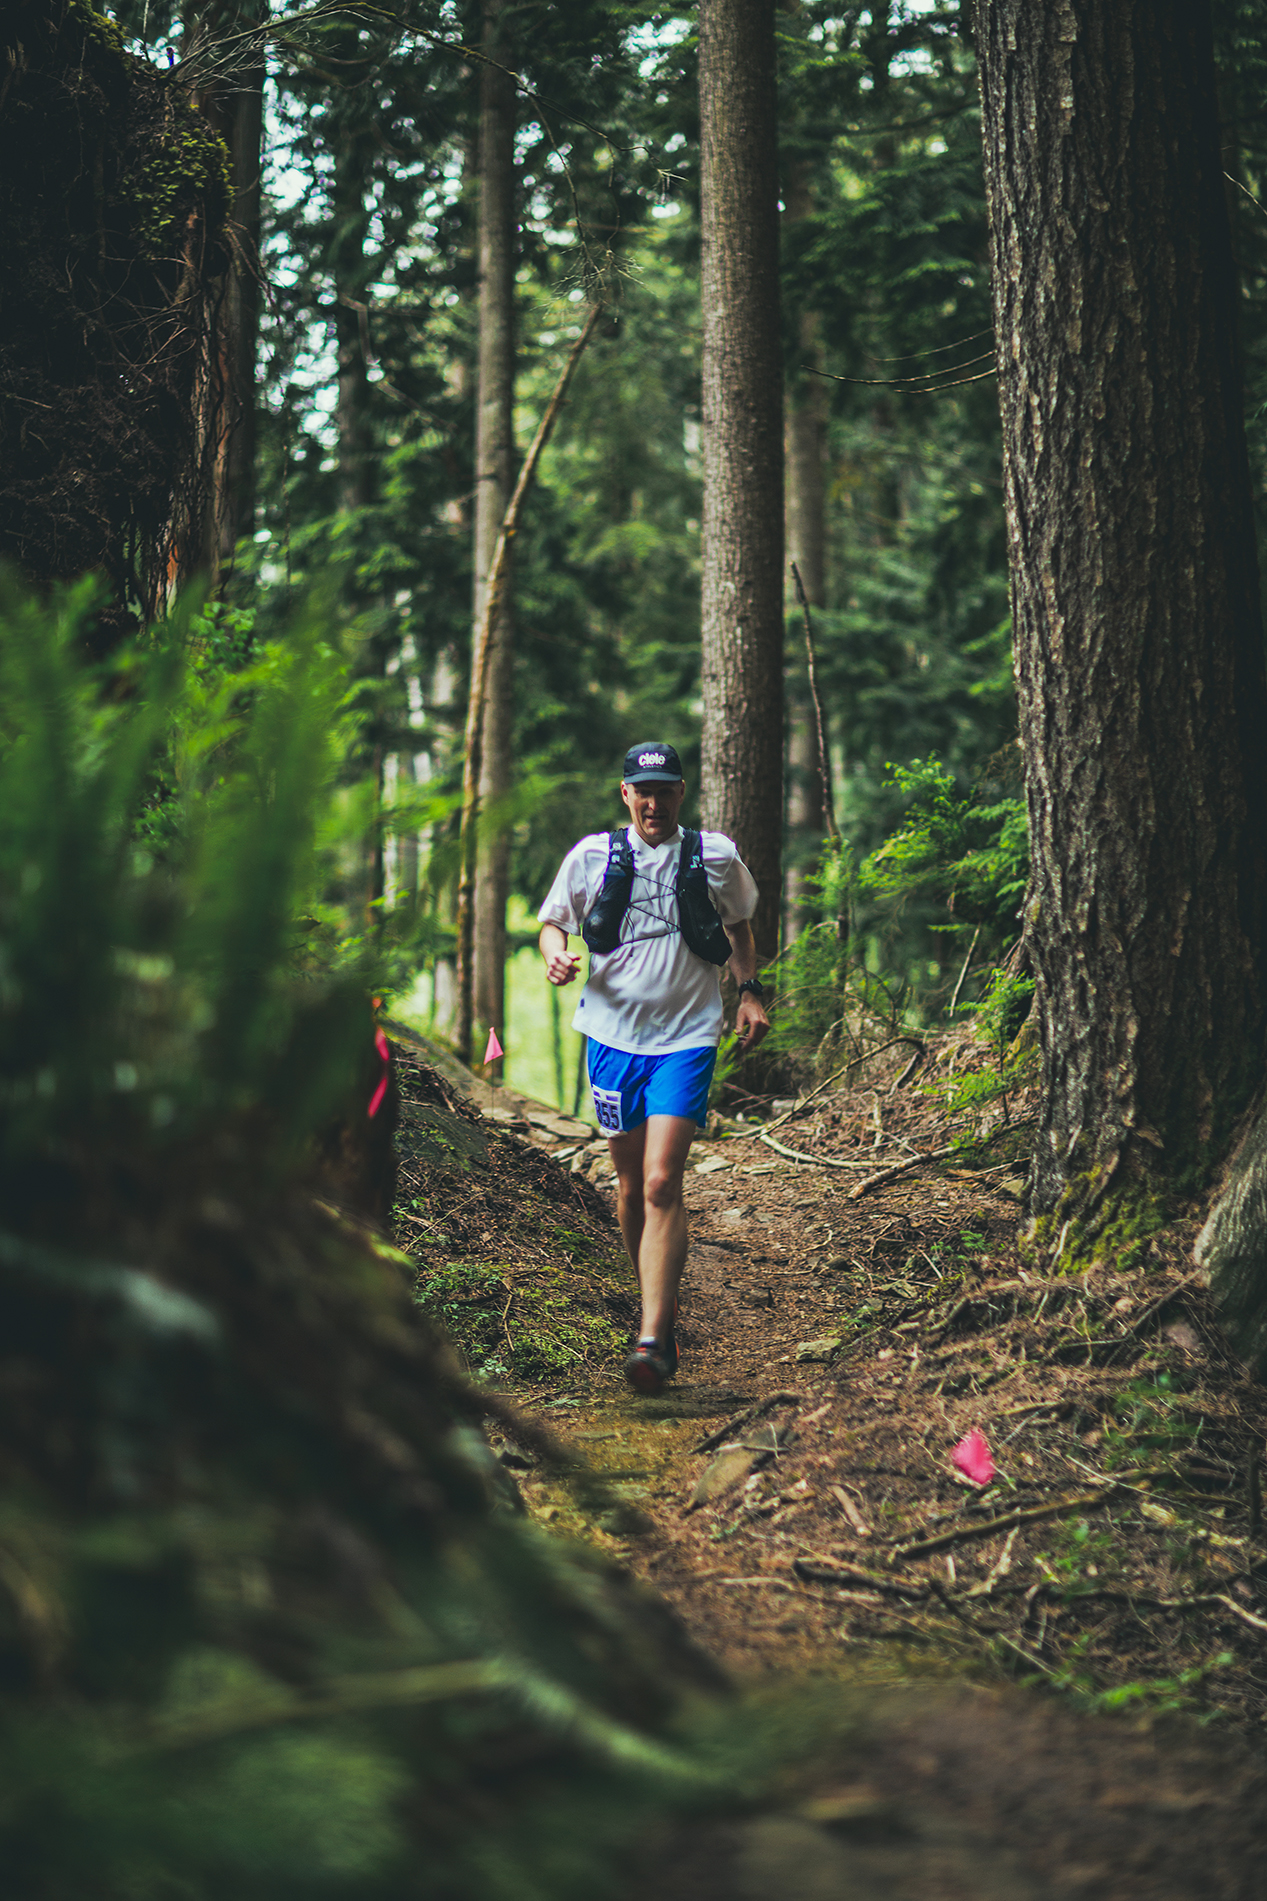 Fraser Valley Trail Races - Bear Mountain - IMG_2498 by Brice Ferre Studio - Vancouver Portrait Adventure and Athlete Photographer.jpg